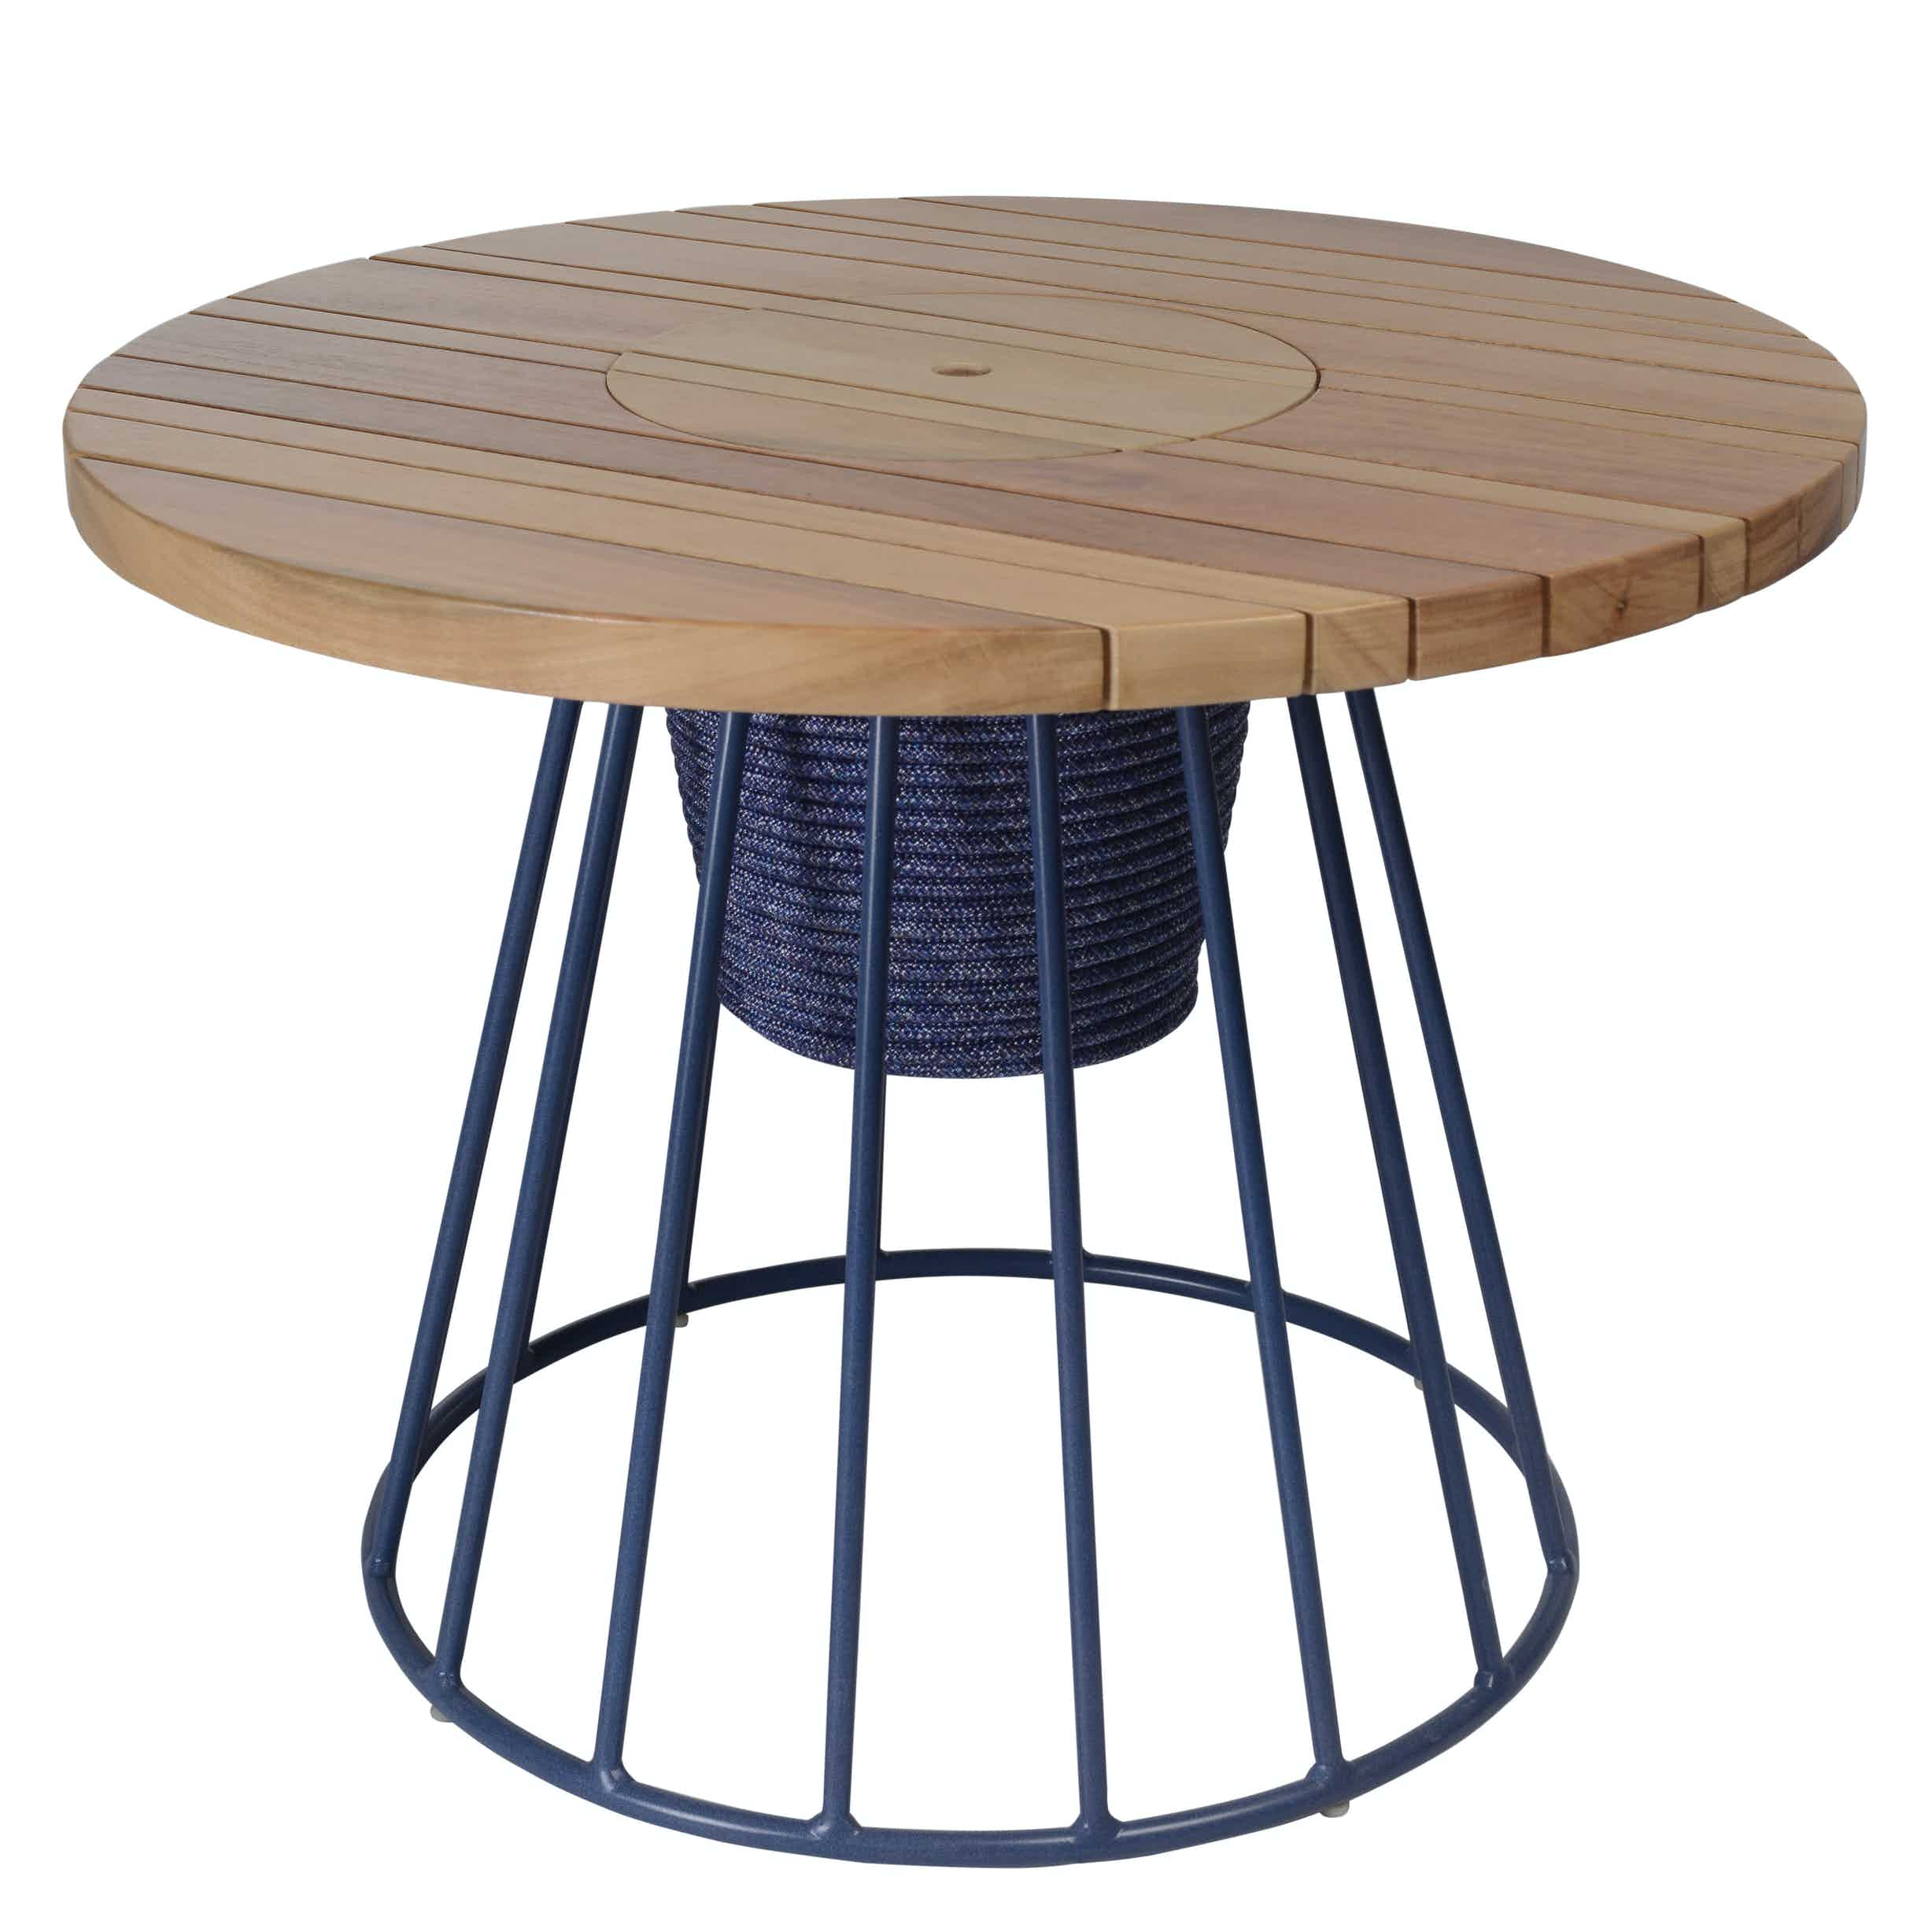 Tidelli biarritz auxiliary table haute living